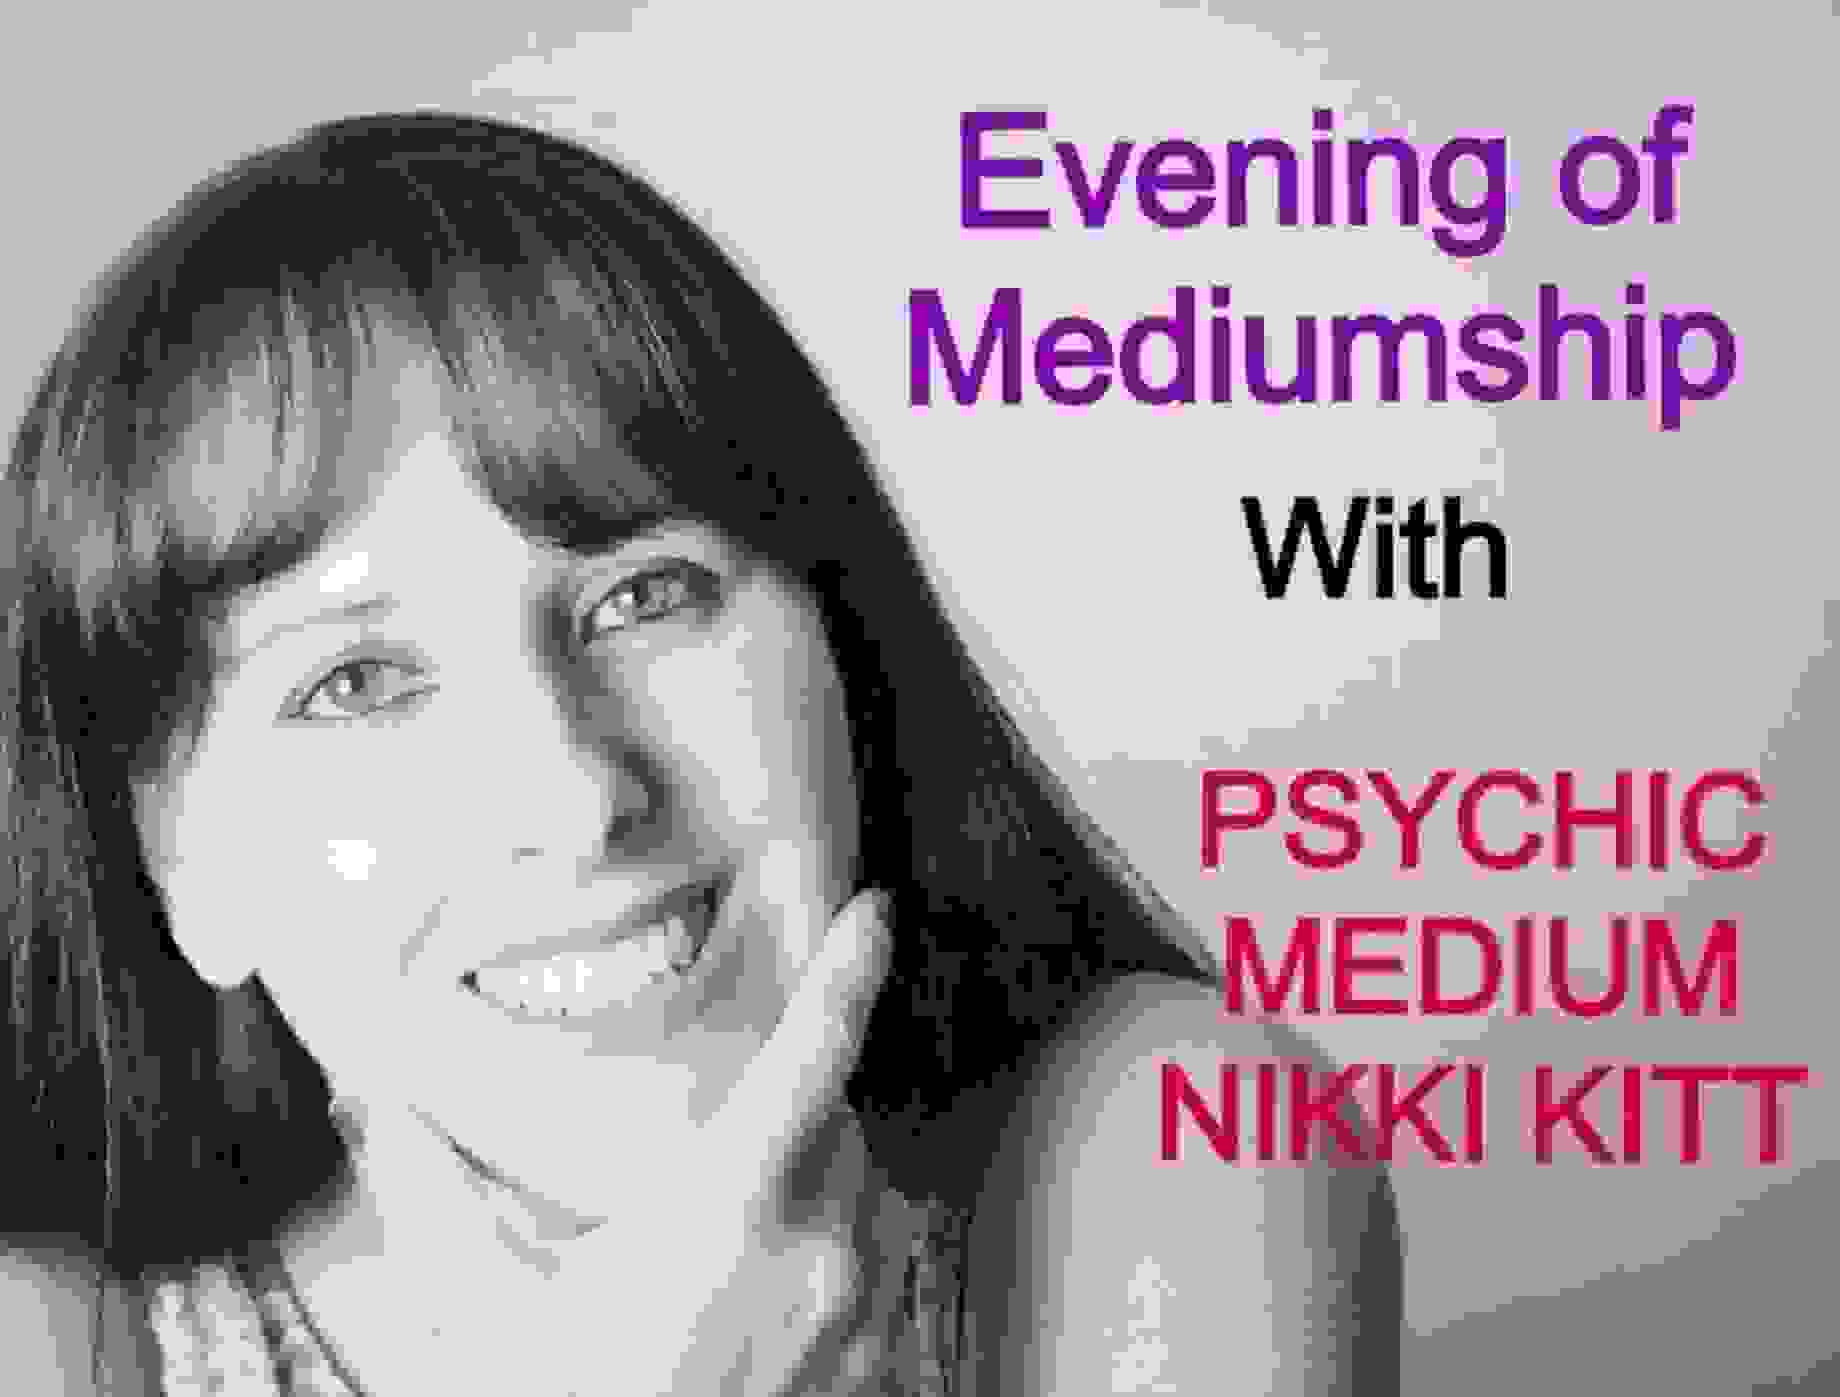 Evening of Mediumship with Psychic Medium Nikki Kitt